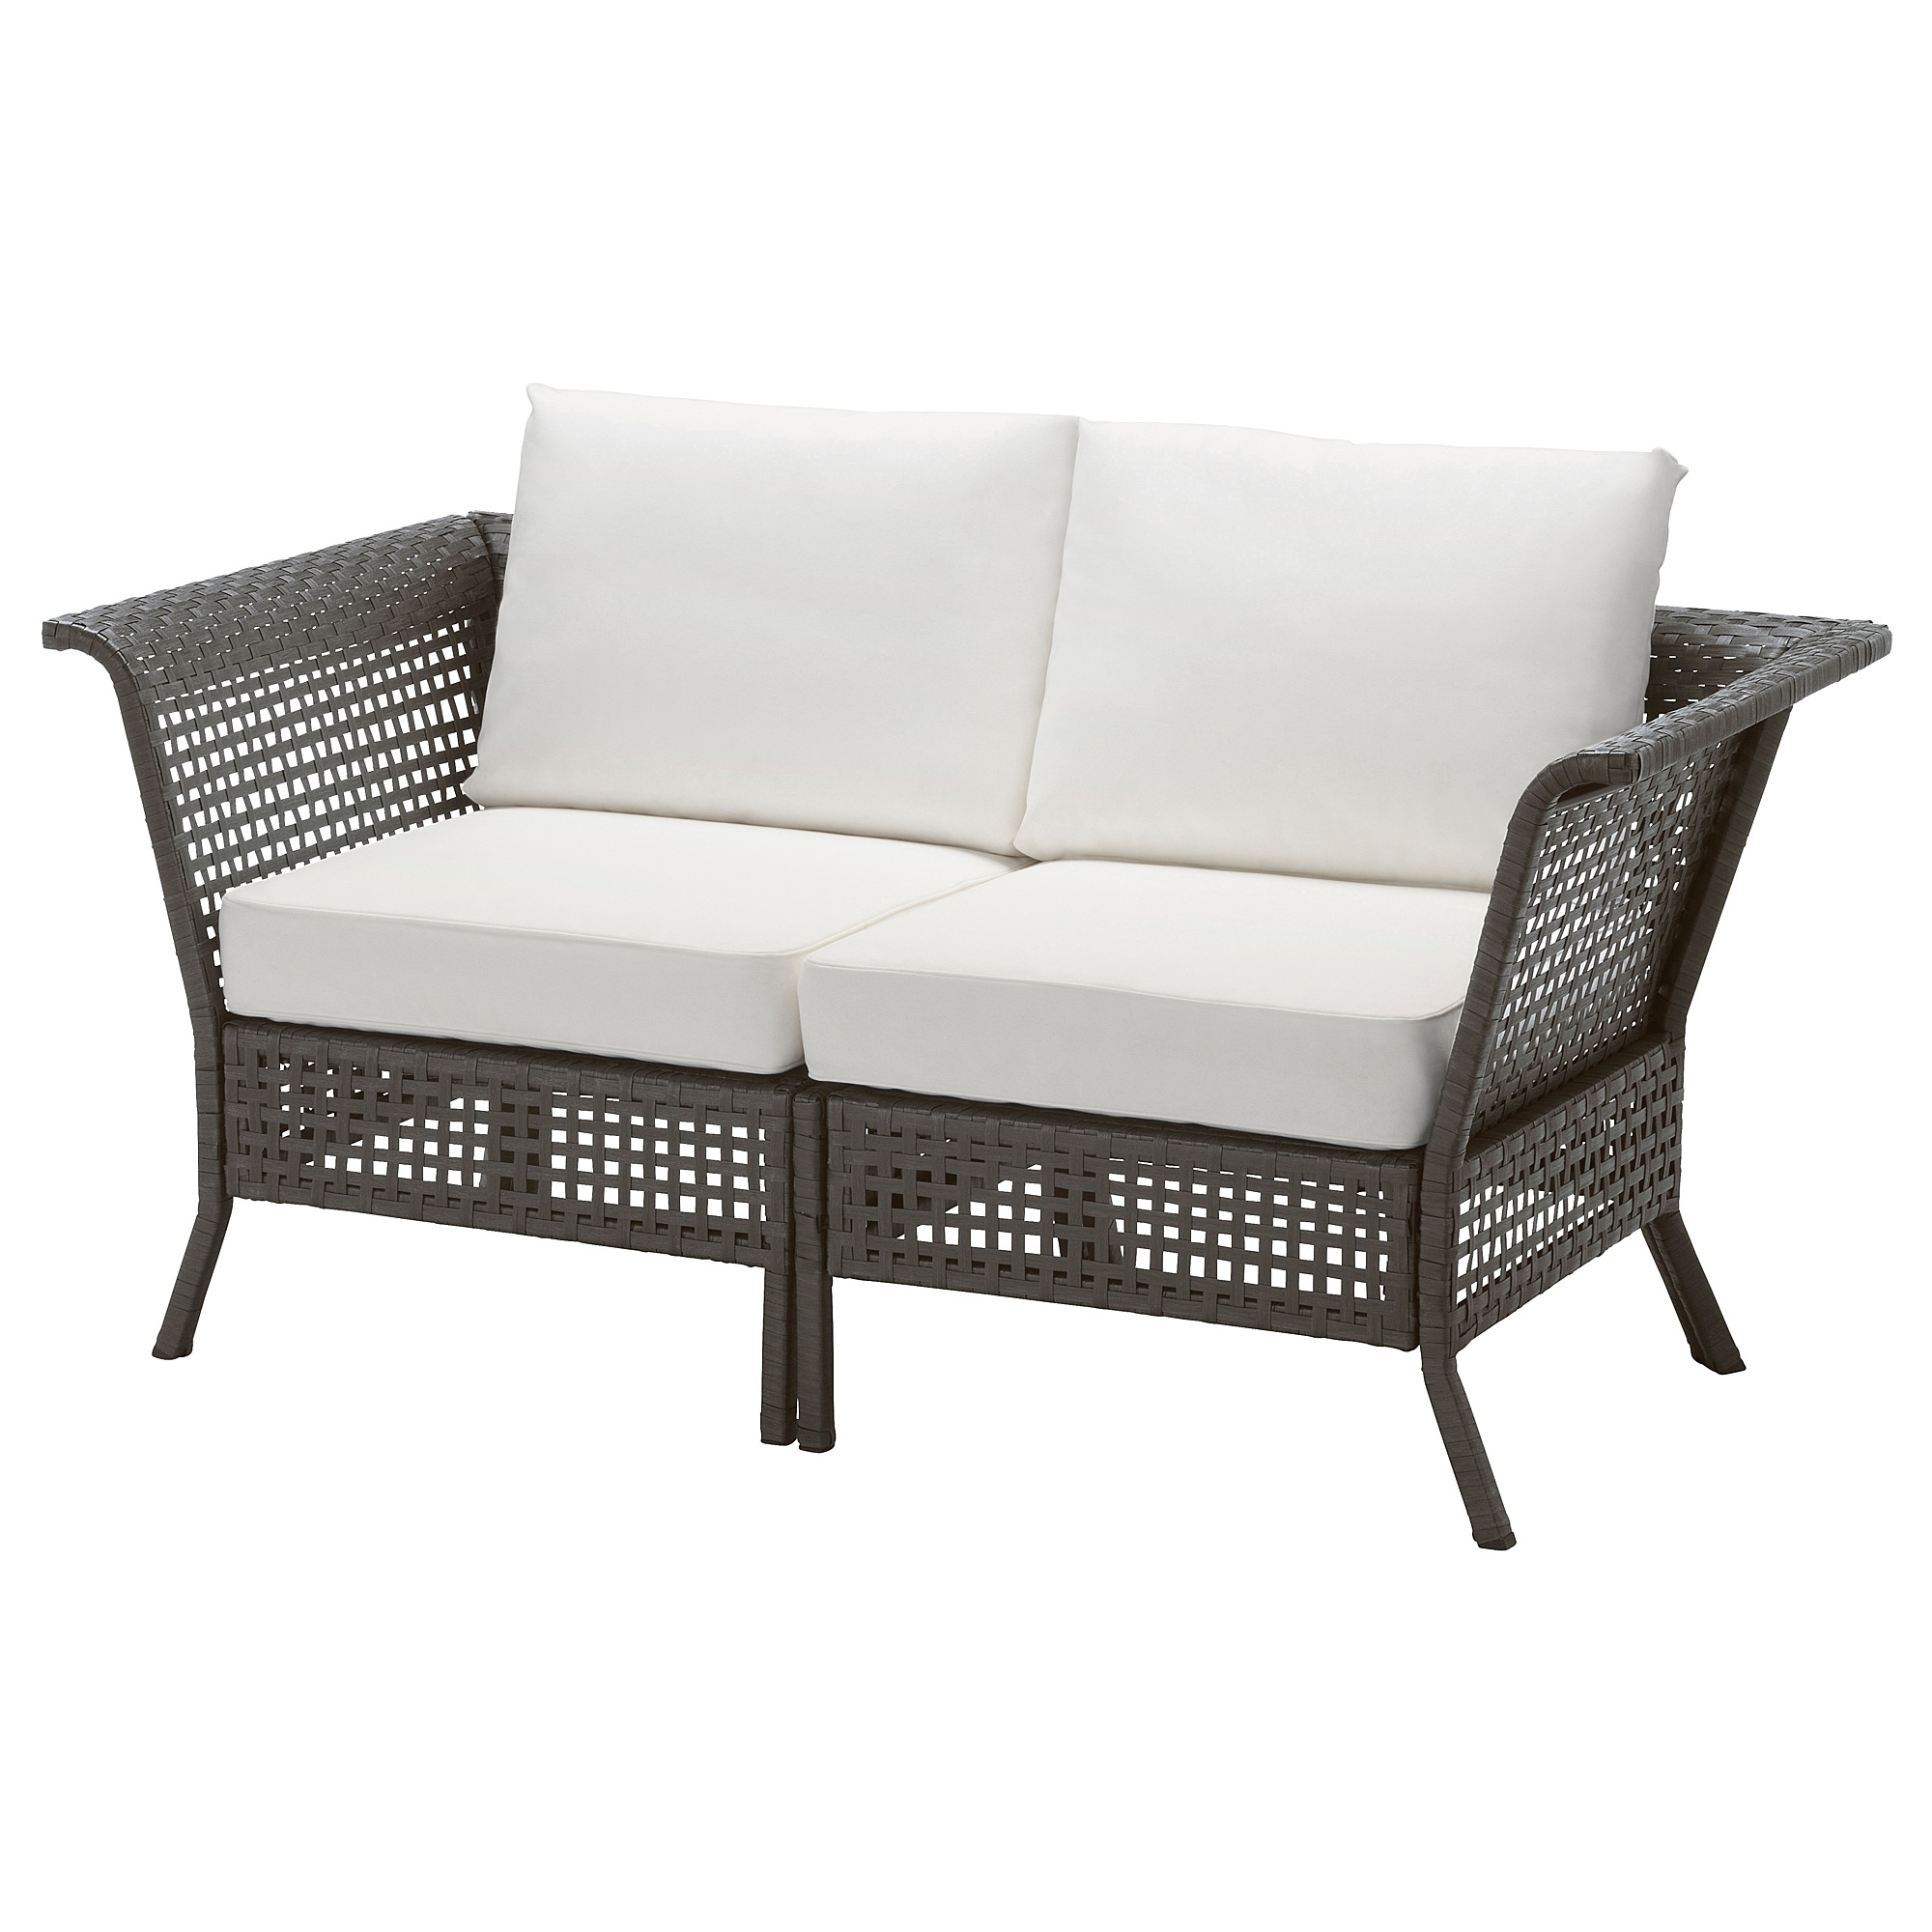 KUNGSHOLMEN Loveseat outdoor black brown Kungsö black IKEA